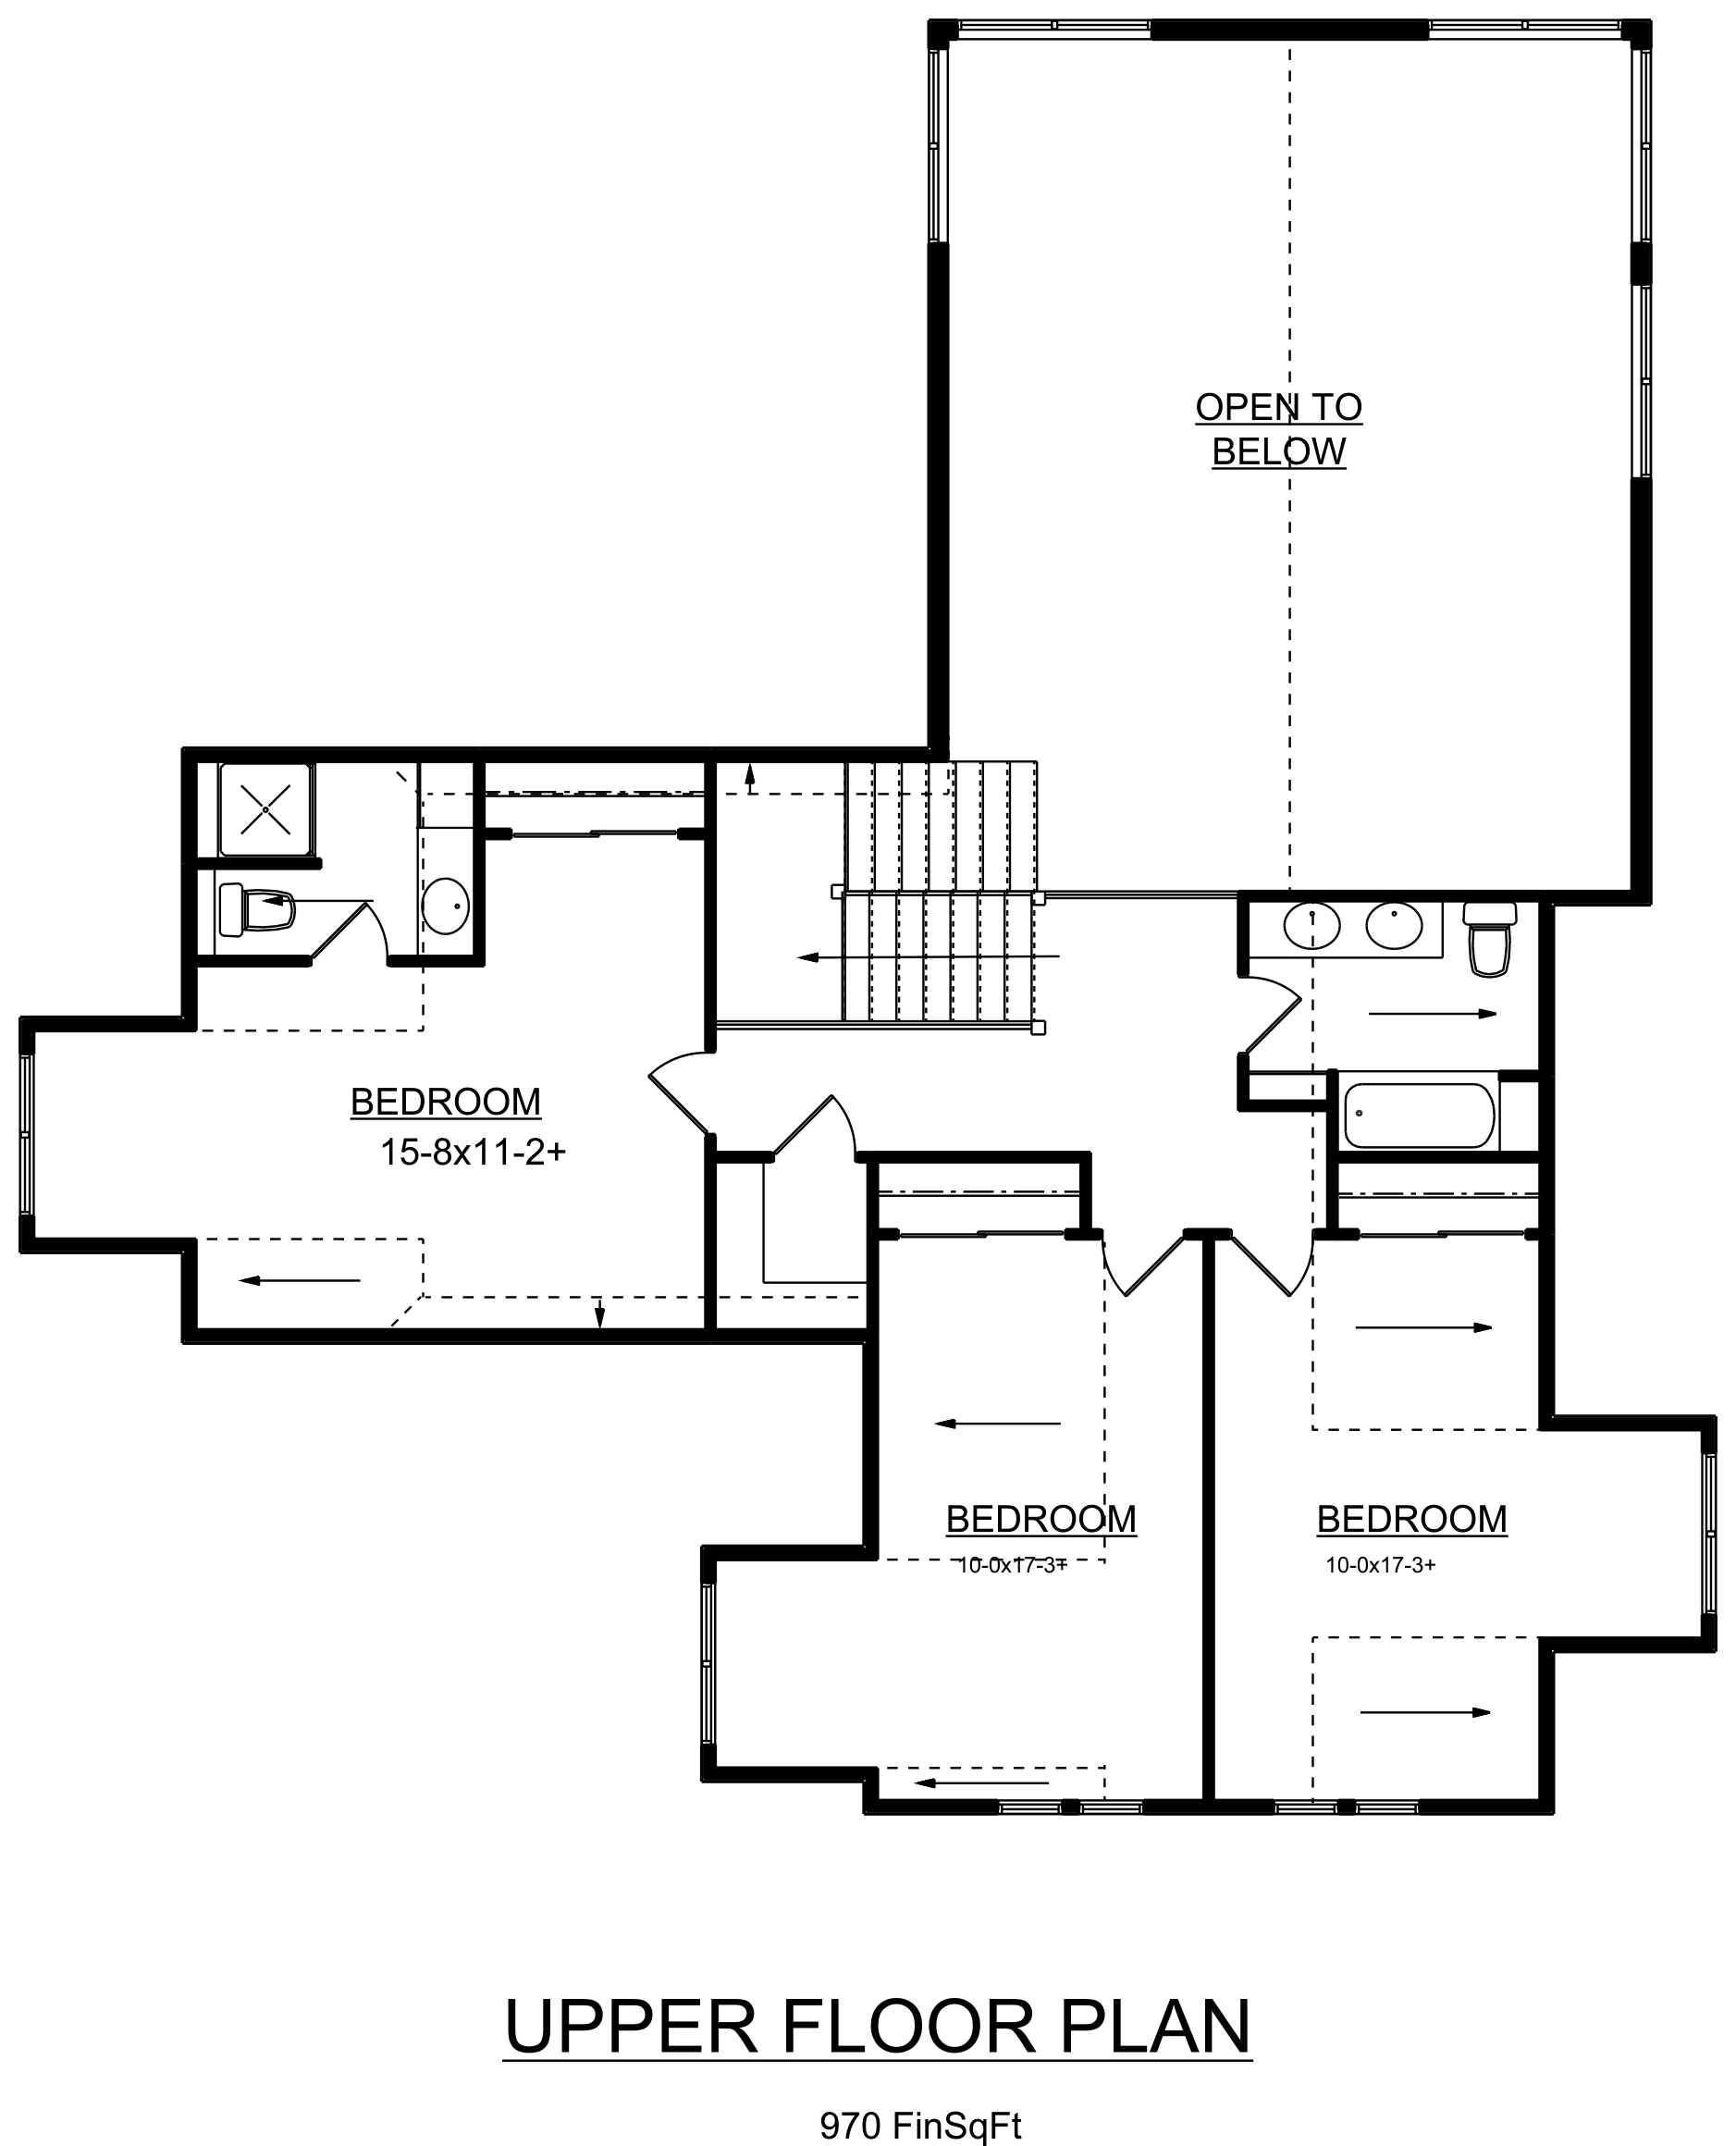 p2-the-kerwin-upper-floor-r-c